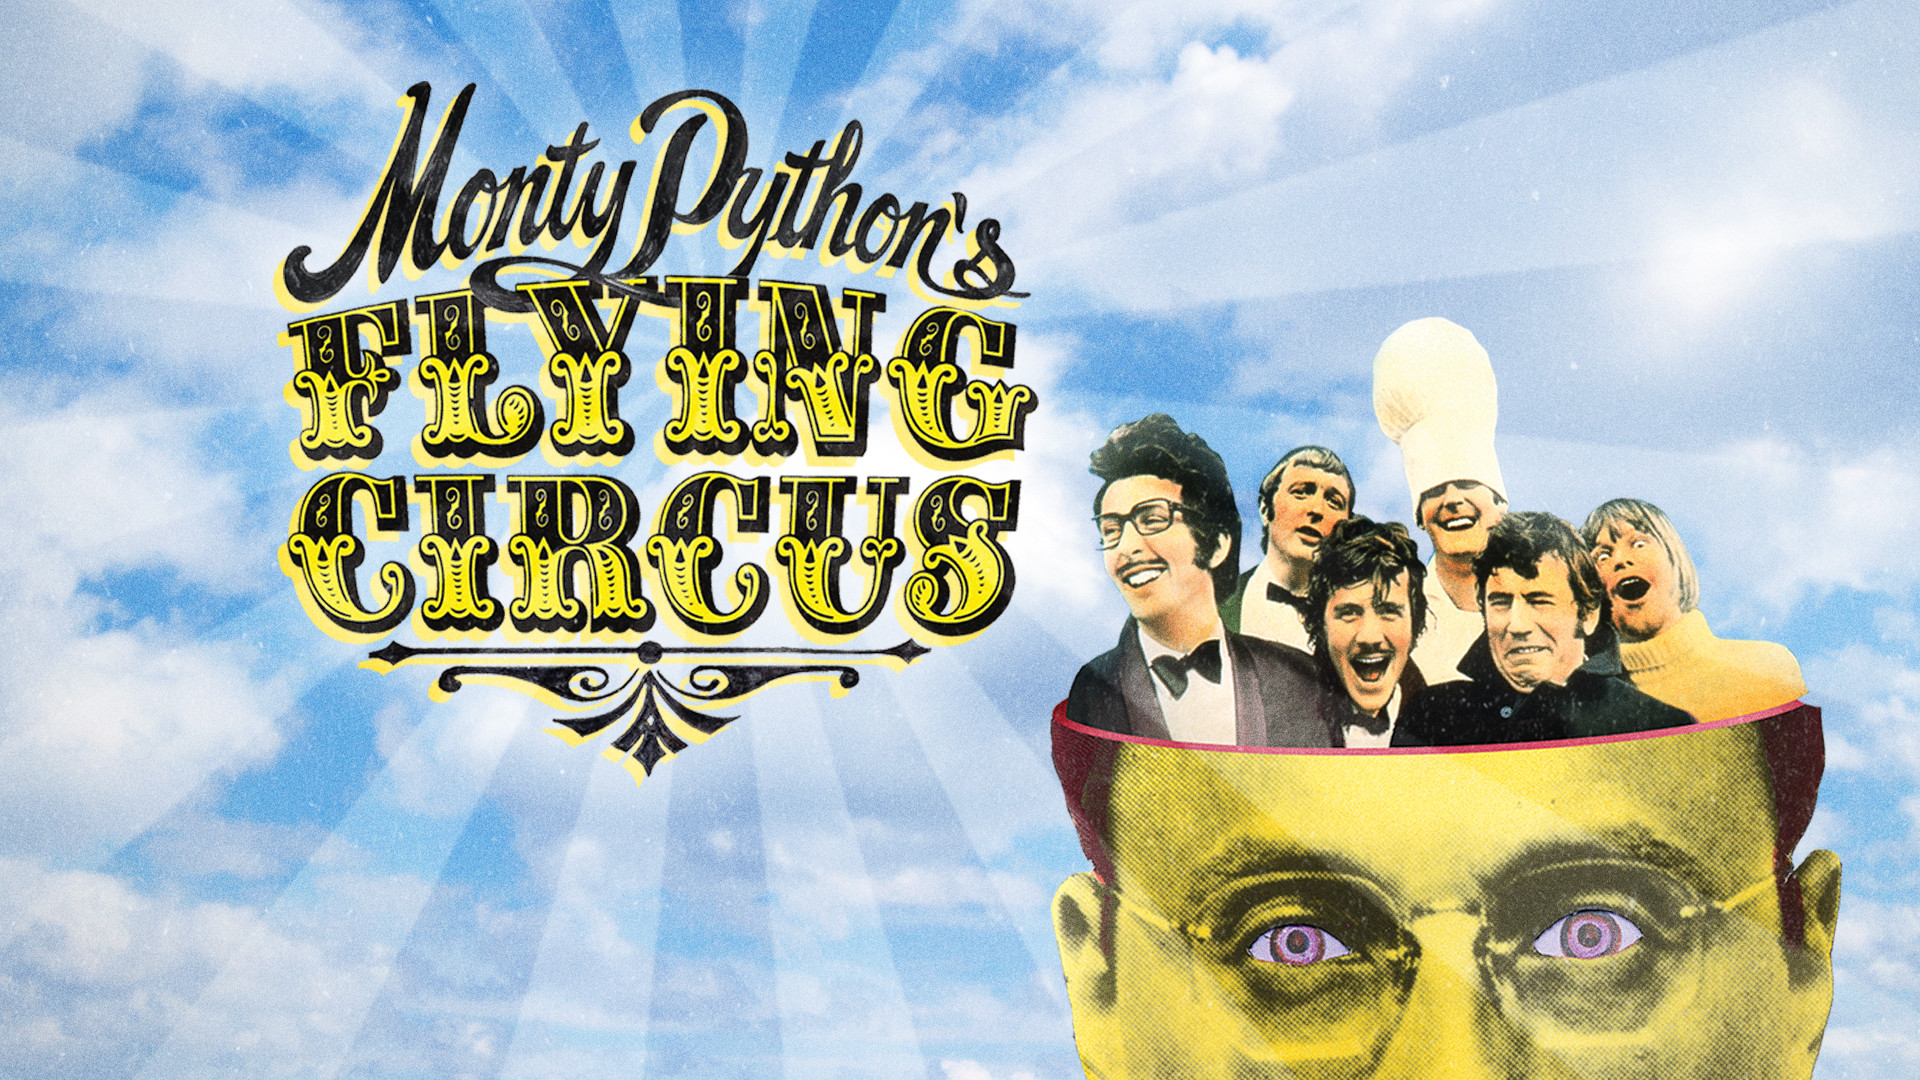 ver Monty Pythons Flying Circus